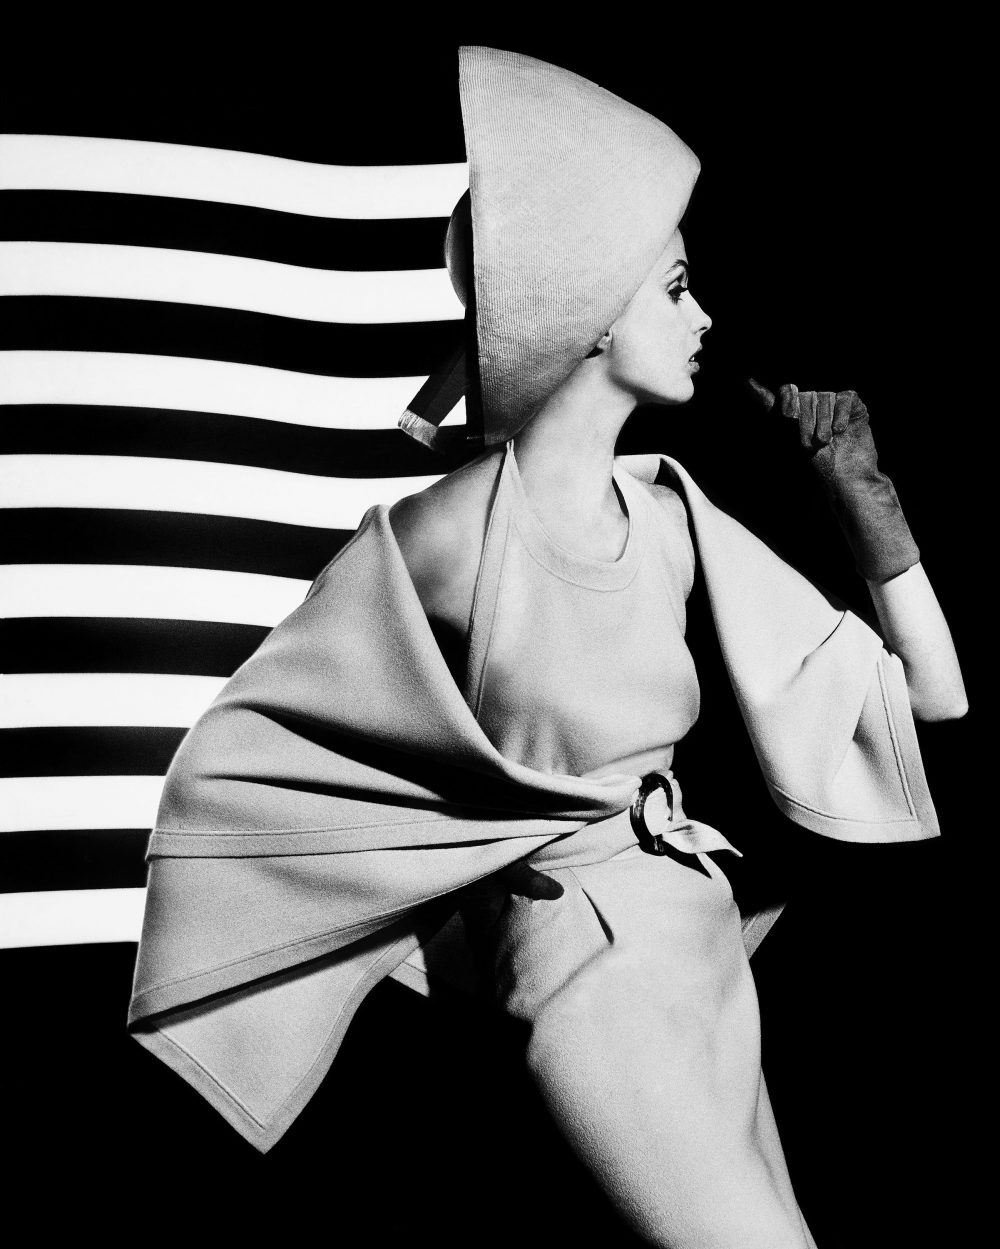 08.dorothy-white-light-stripes-paris-1962_william-klein